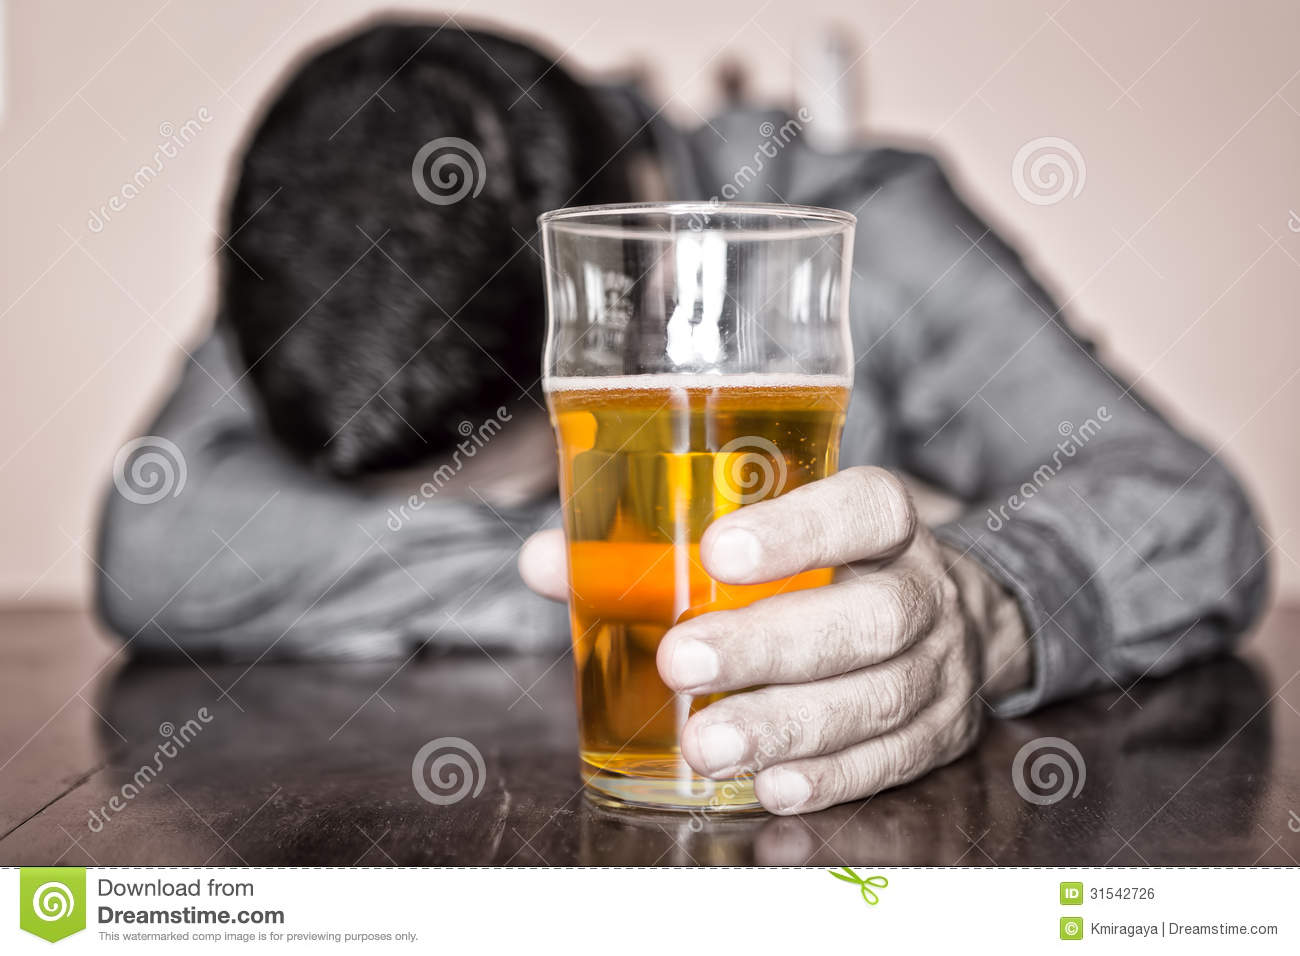 black-white-image-sleeping-drunk-man-his